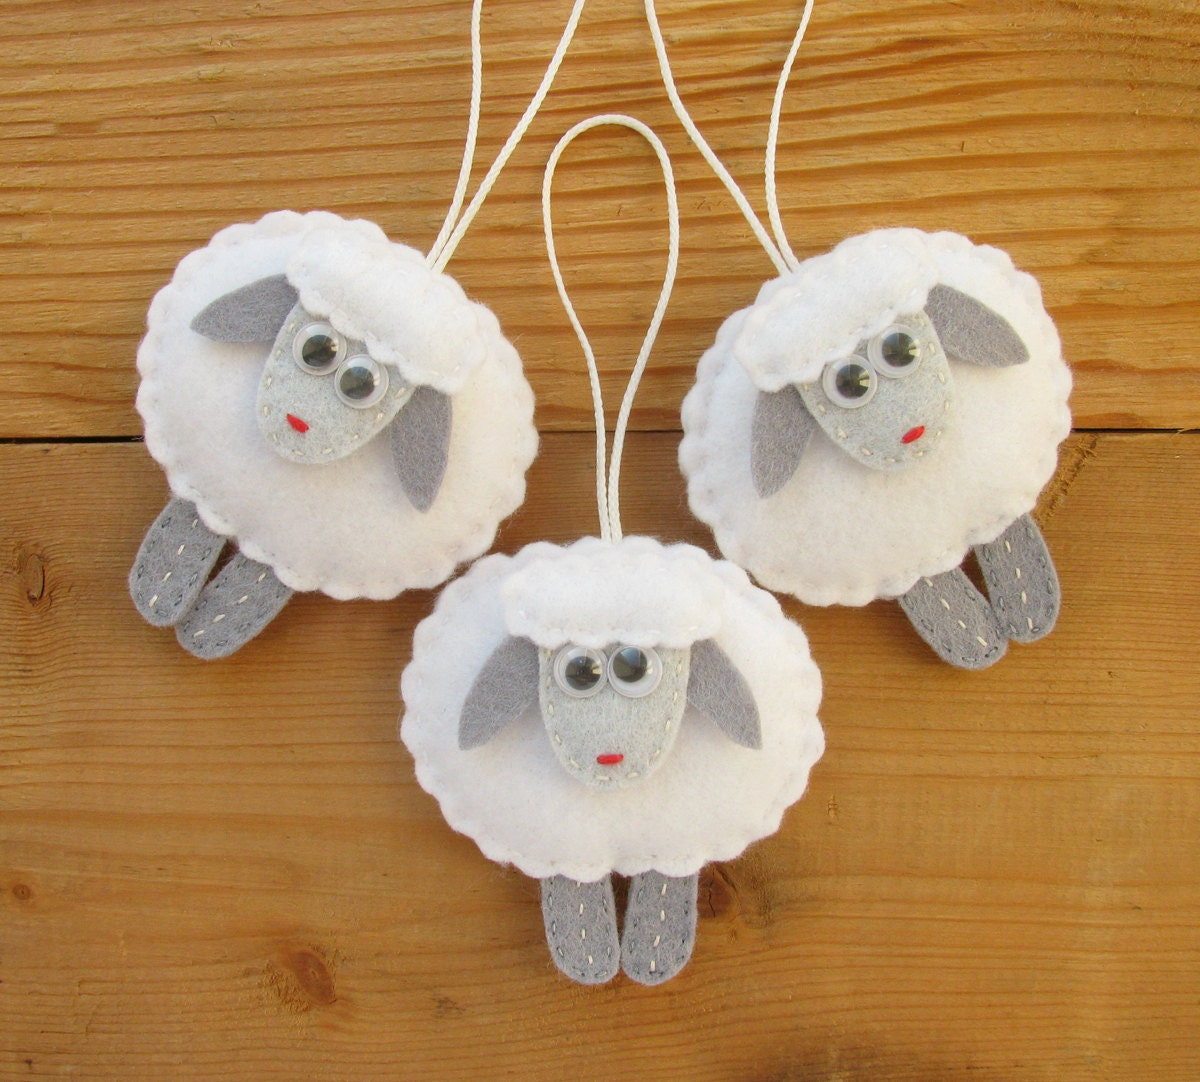 felt sheep ornaments christmas tree decorations home decor